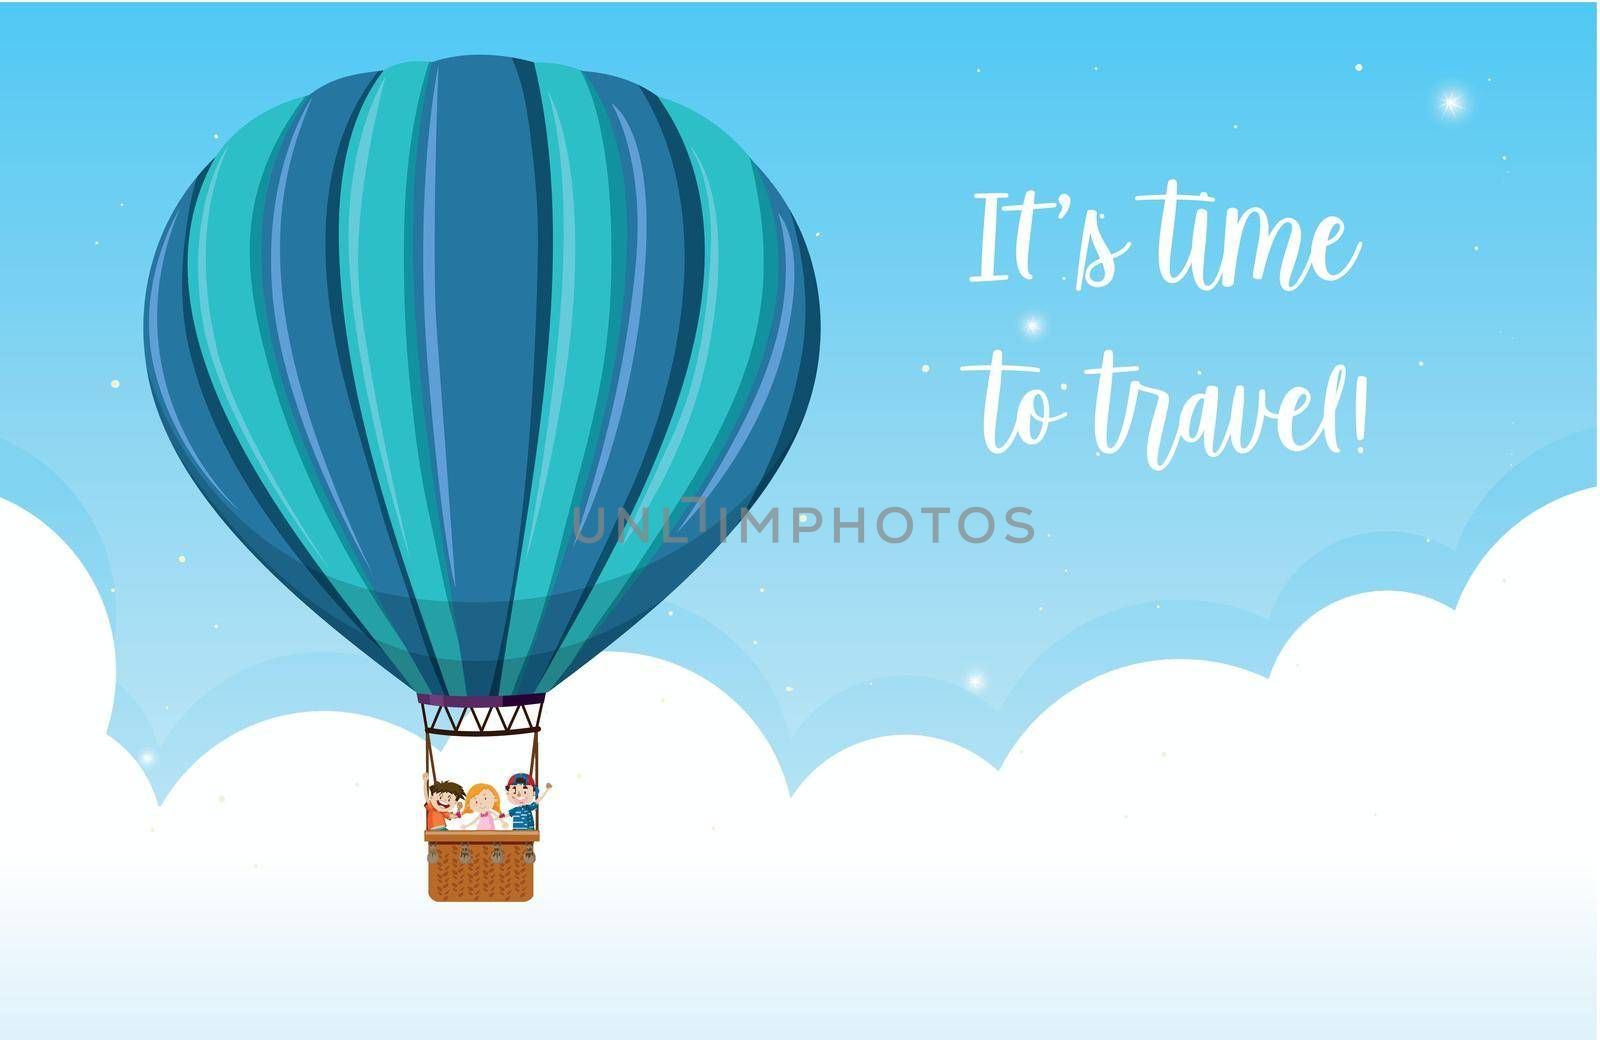 It's time to travel illustration